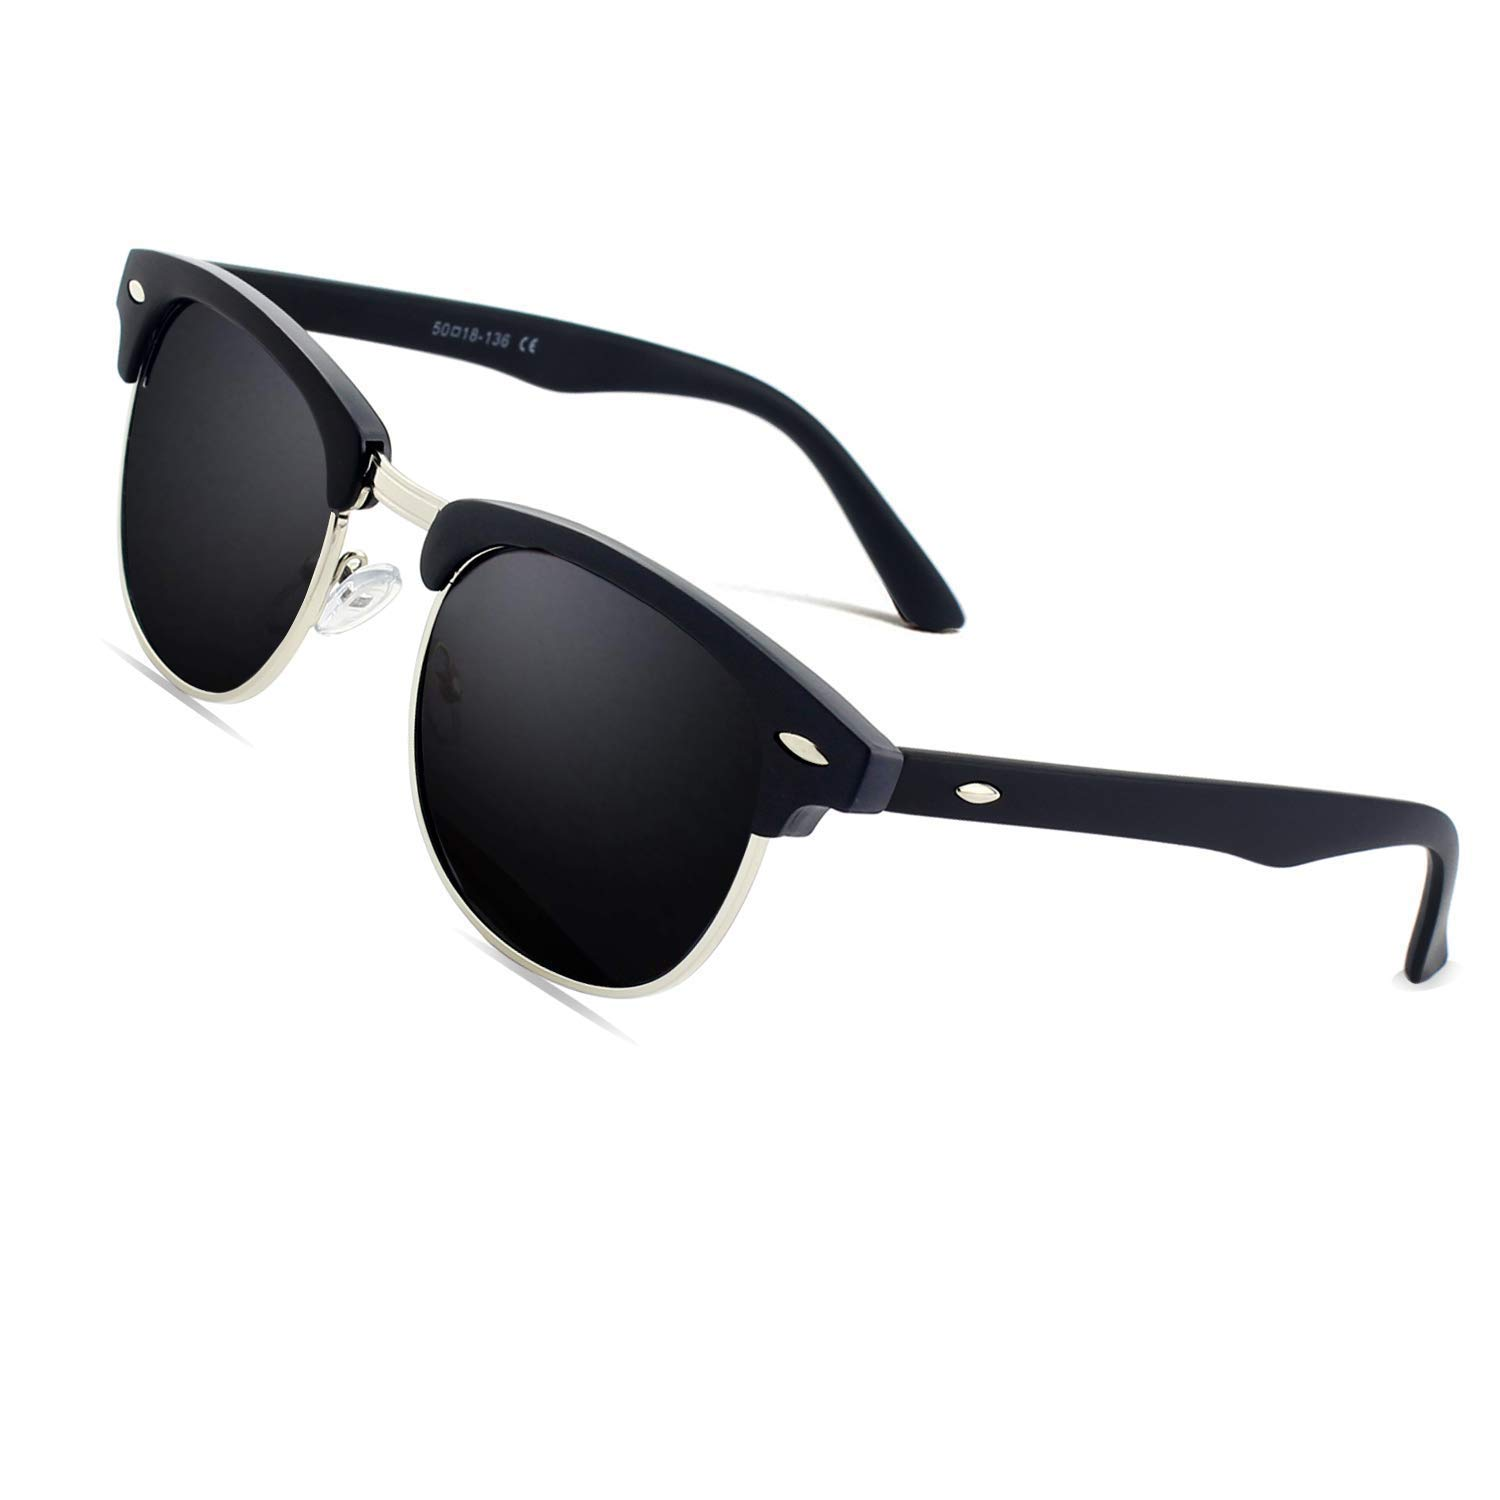 8e77c0b3a CGID MJ56 Premium Inspired Half Frame Polarized Sunglasses with Metal  Rivets,Matte Black-Gray: Amazon.co.uk: Clothing